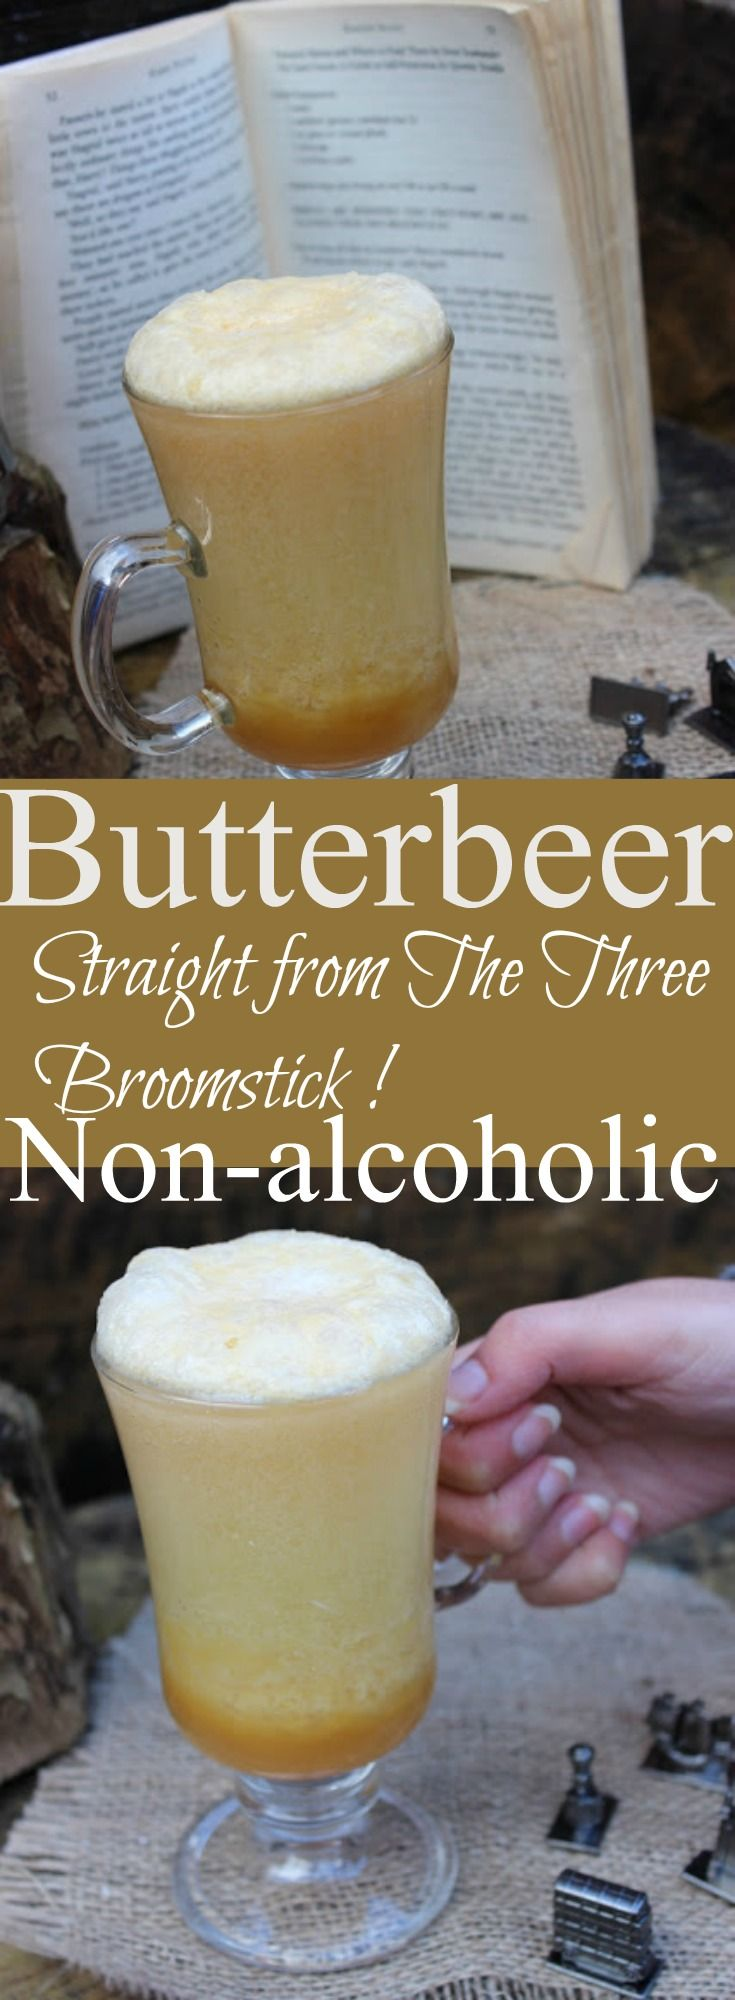 Non alcoholic butterbeer